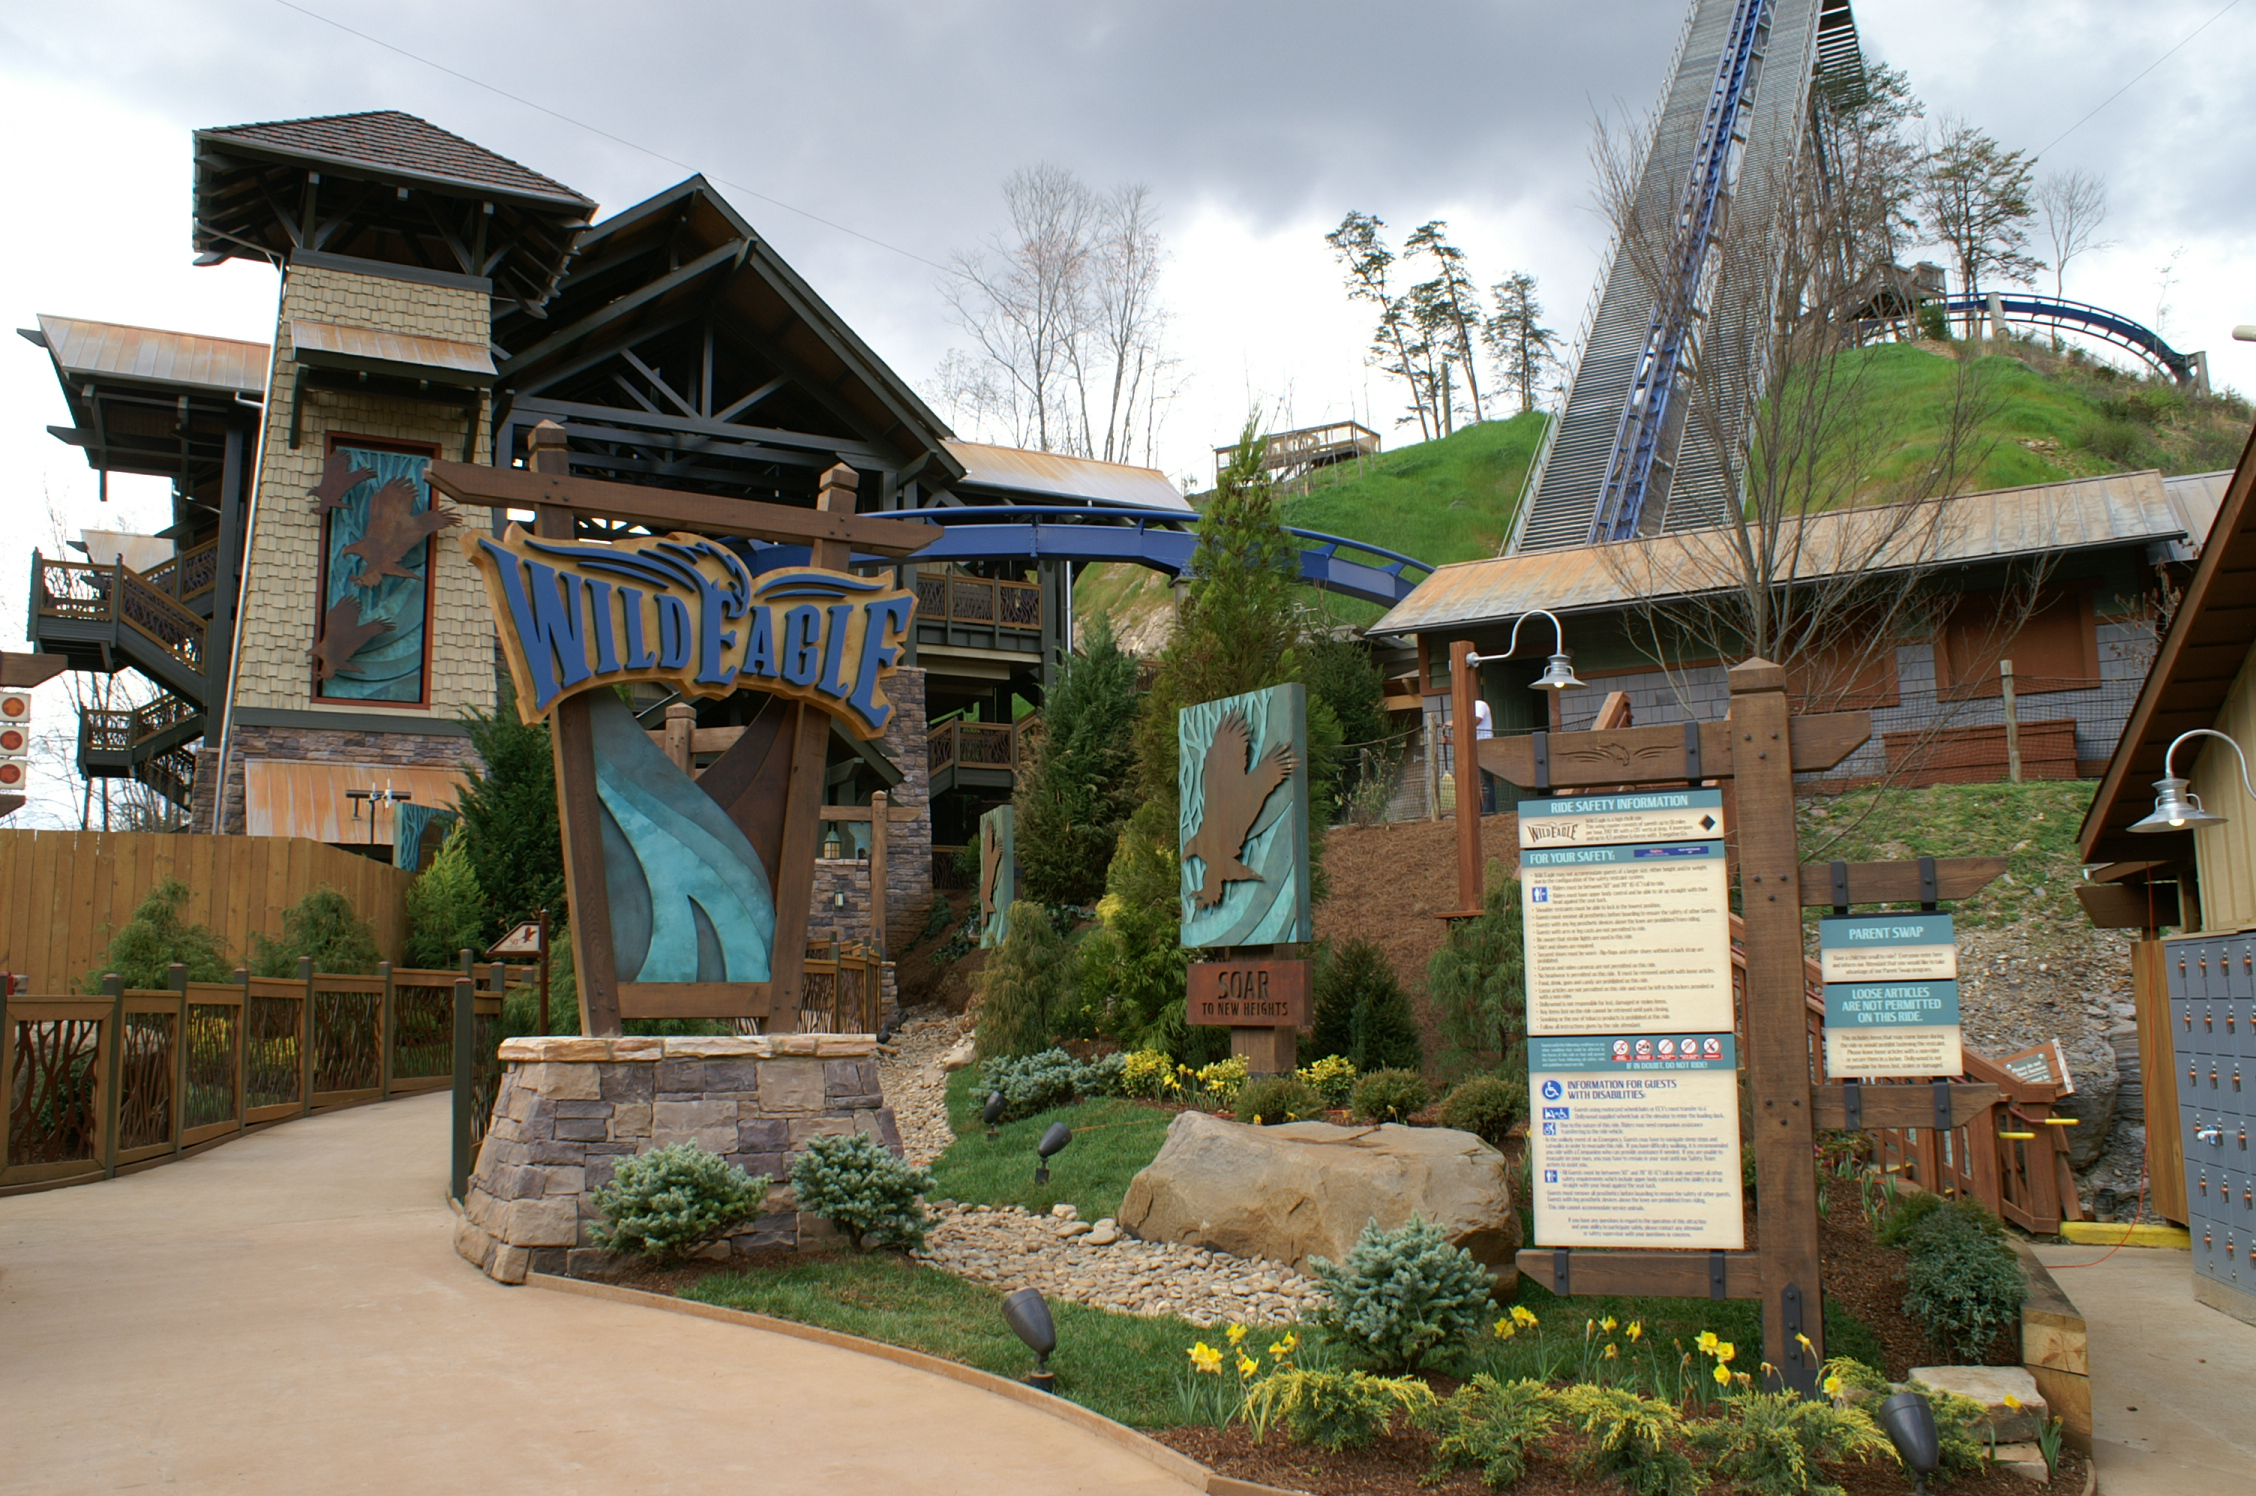 wild eagle roller coaster informational signage dollywood pigeon forge, tn